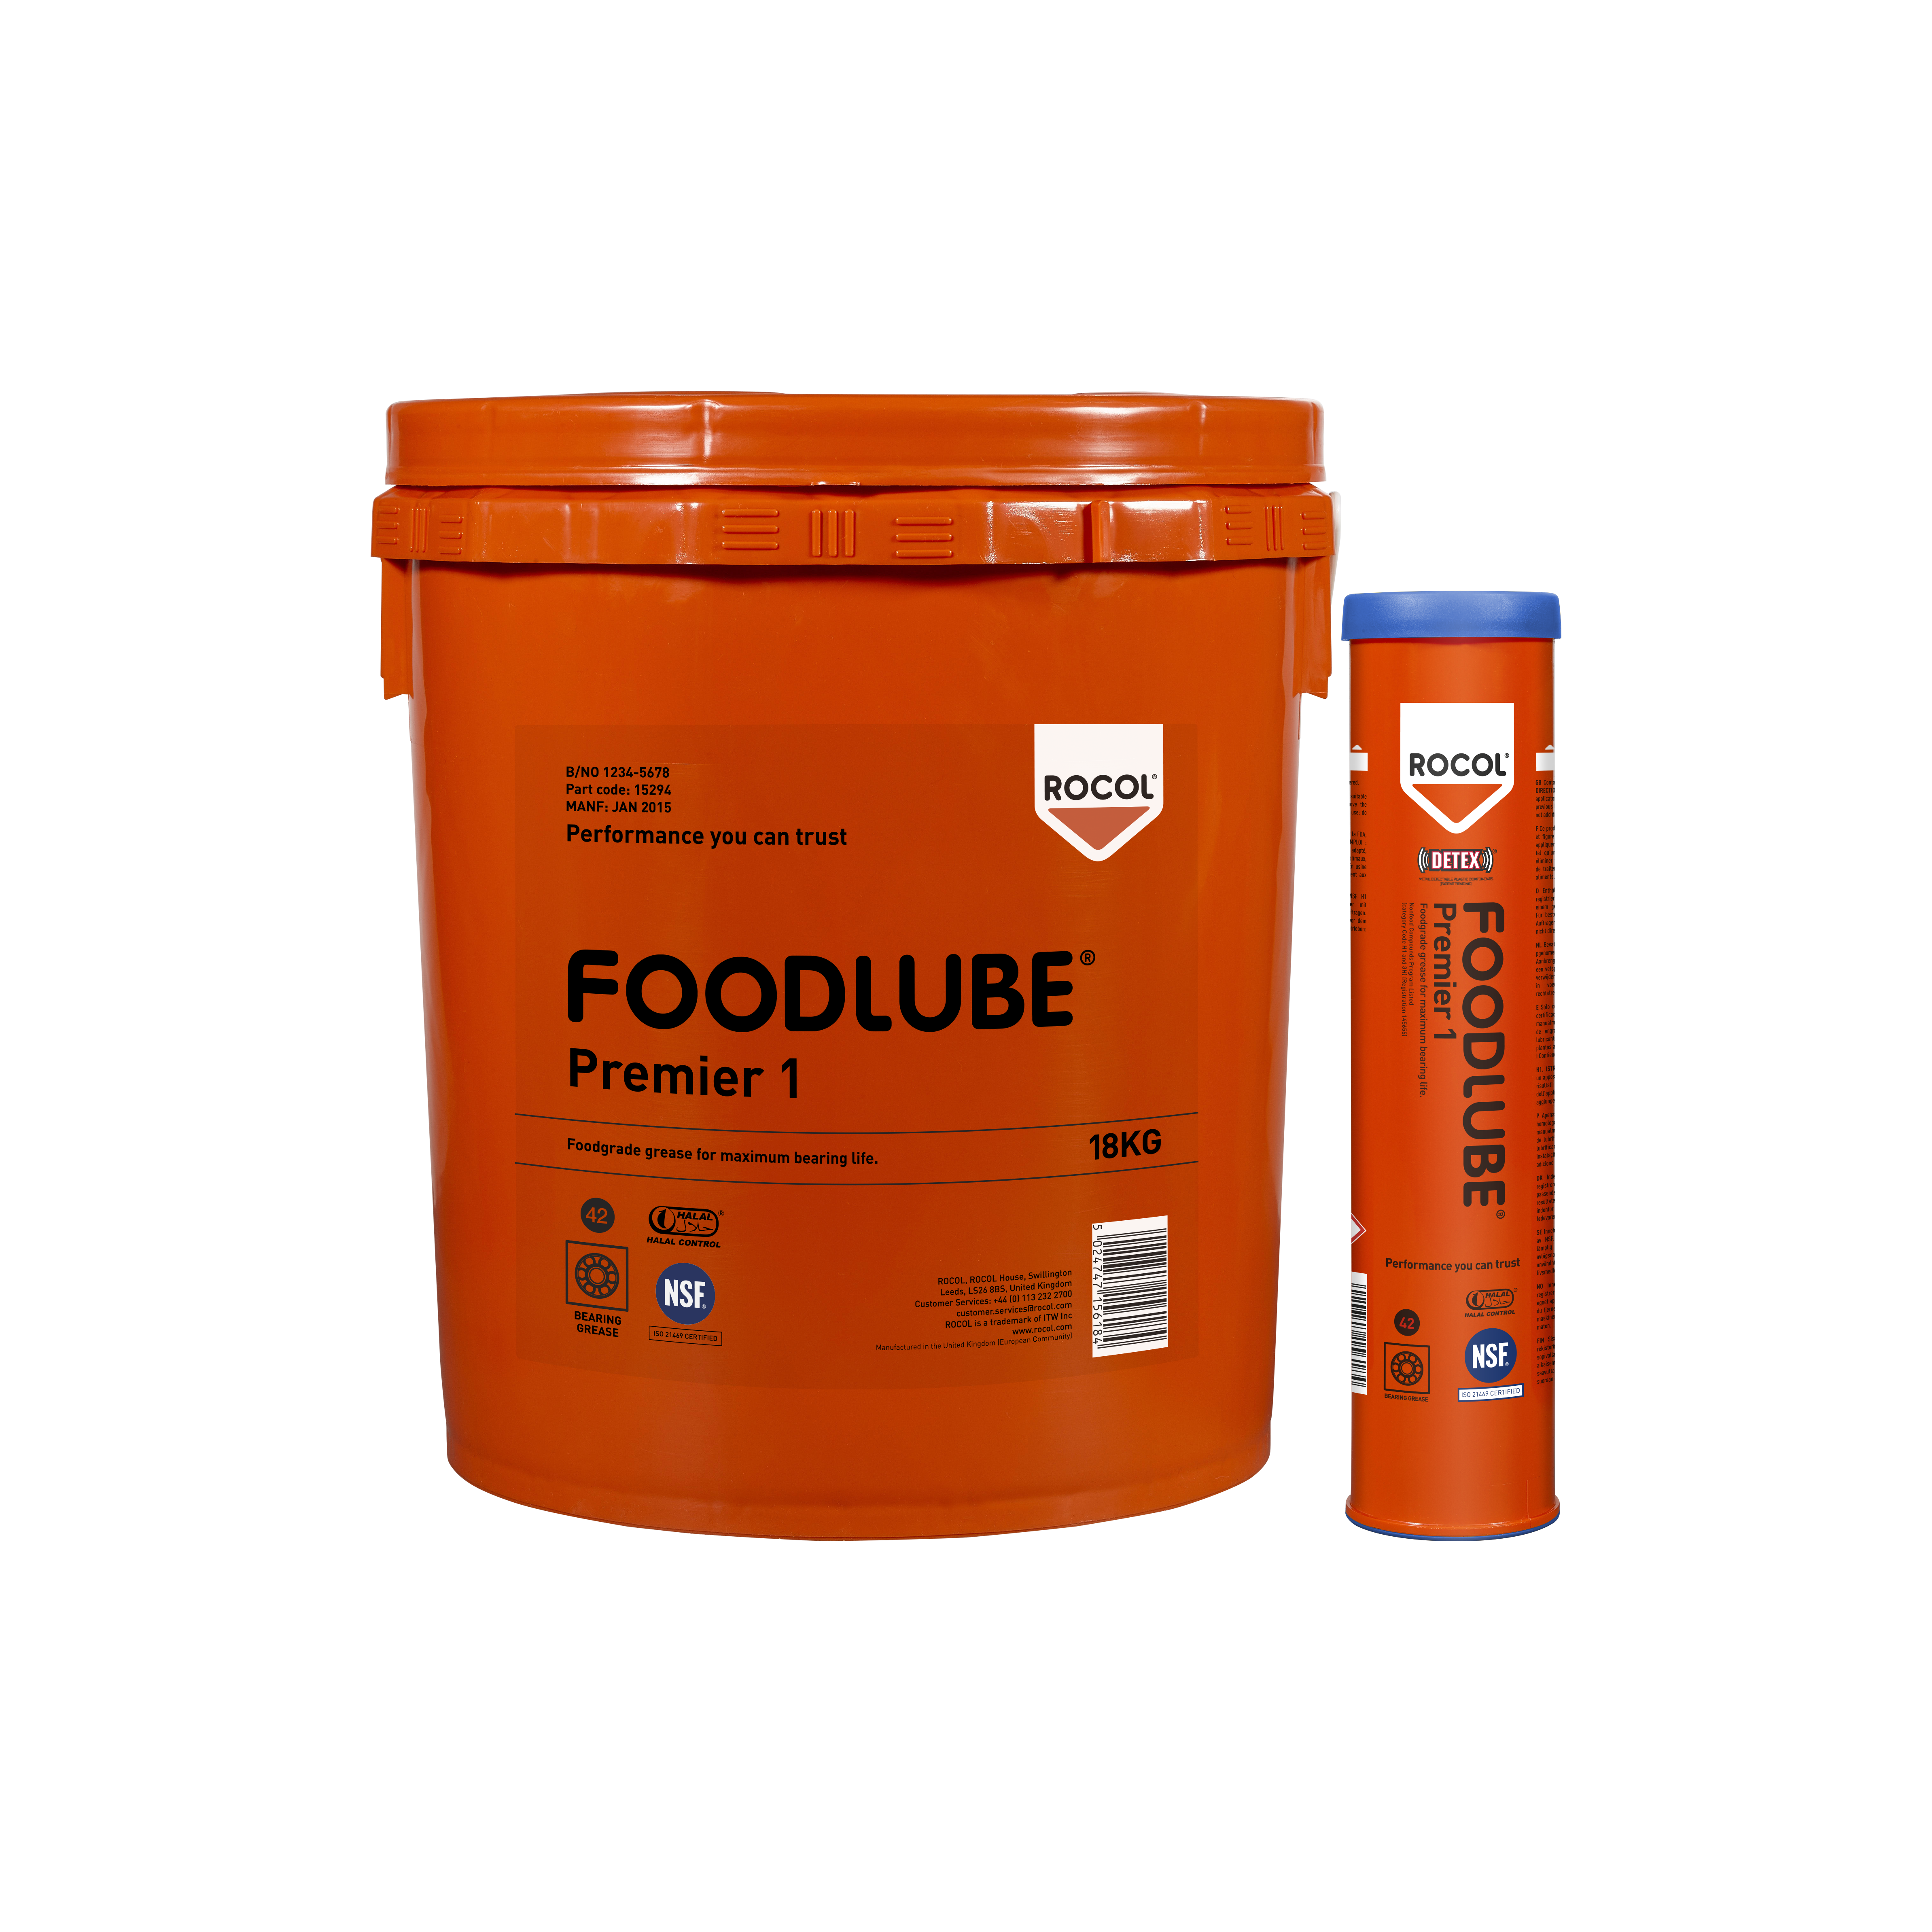 FOODLUBE Premier 1 – an excellent all round grease offering excellent water wash off resistance